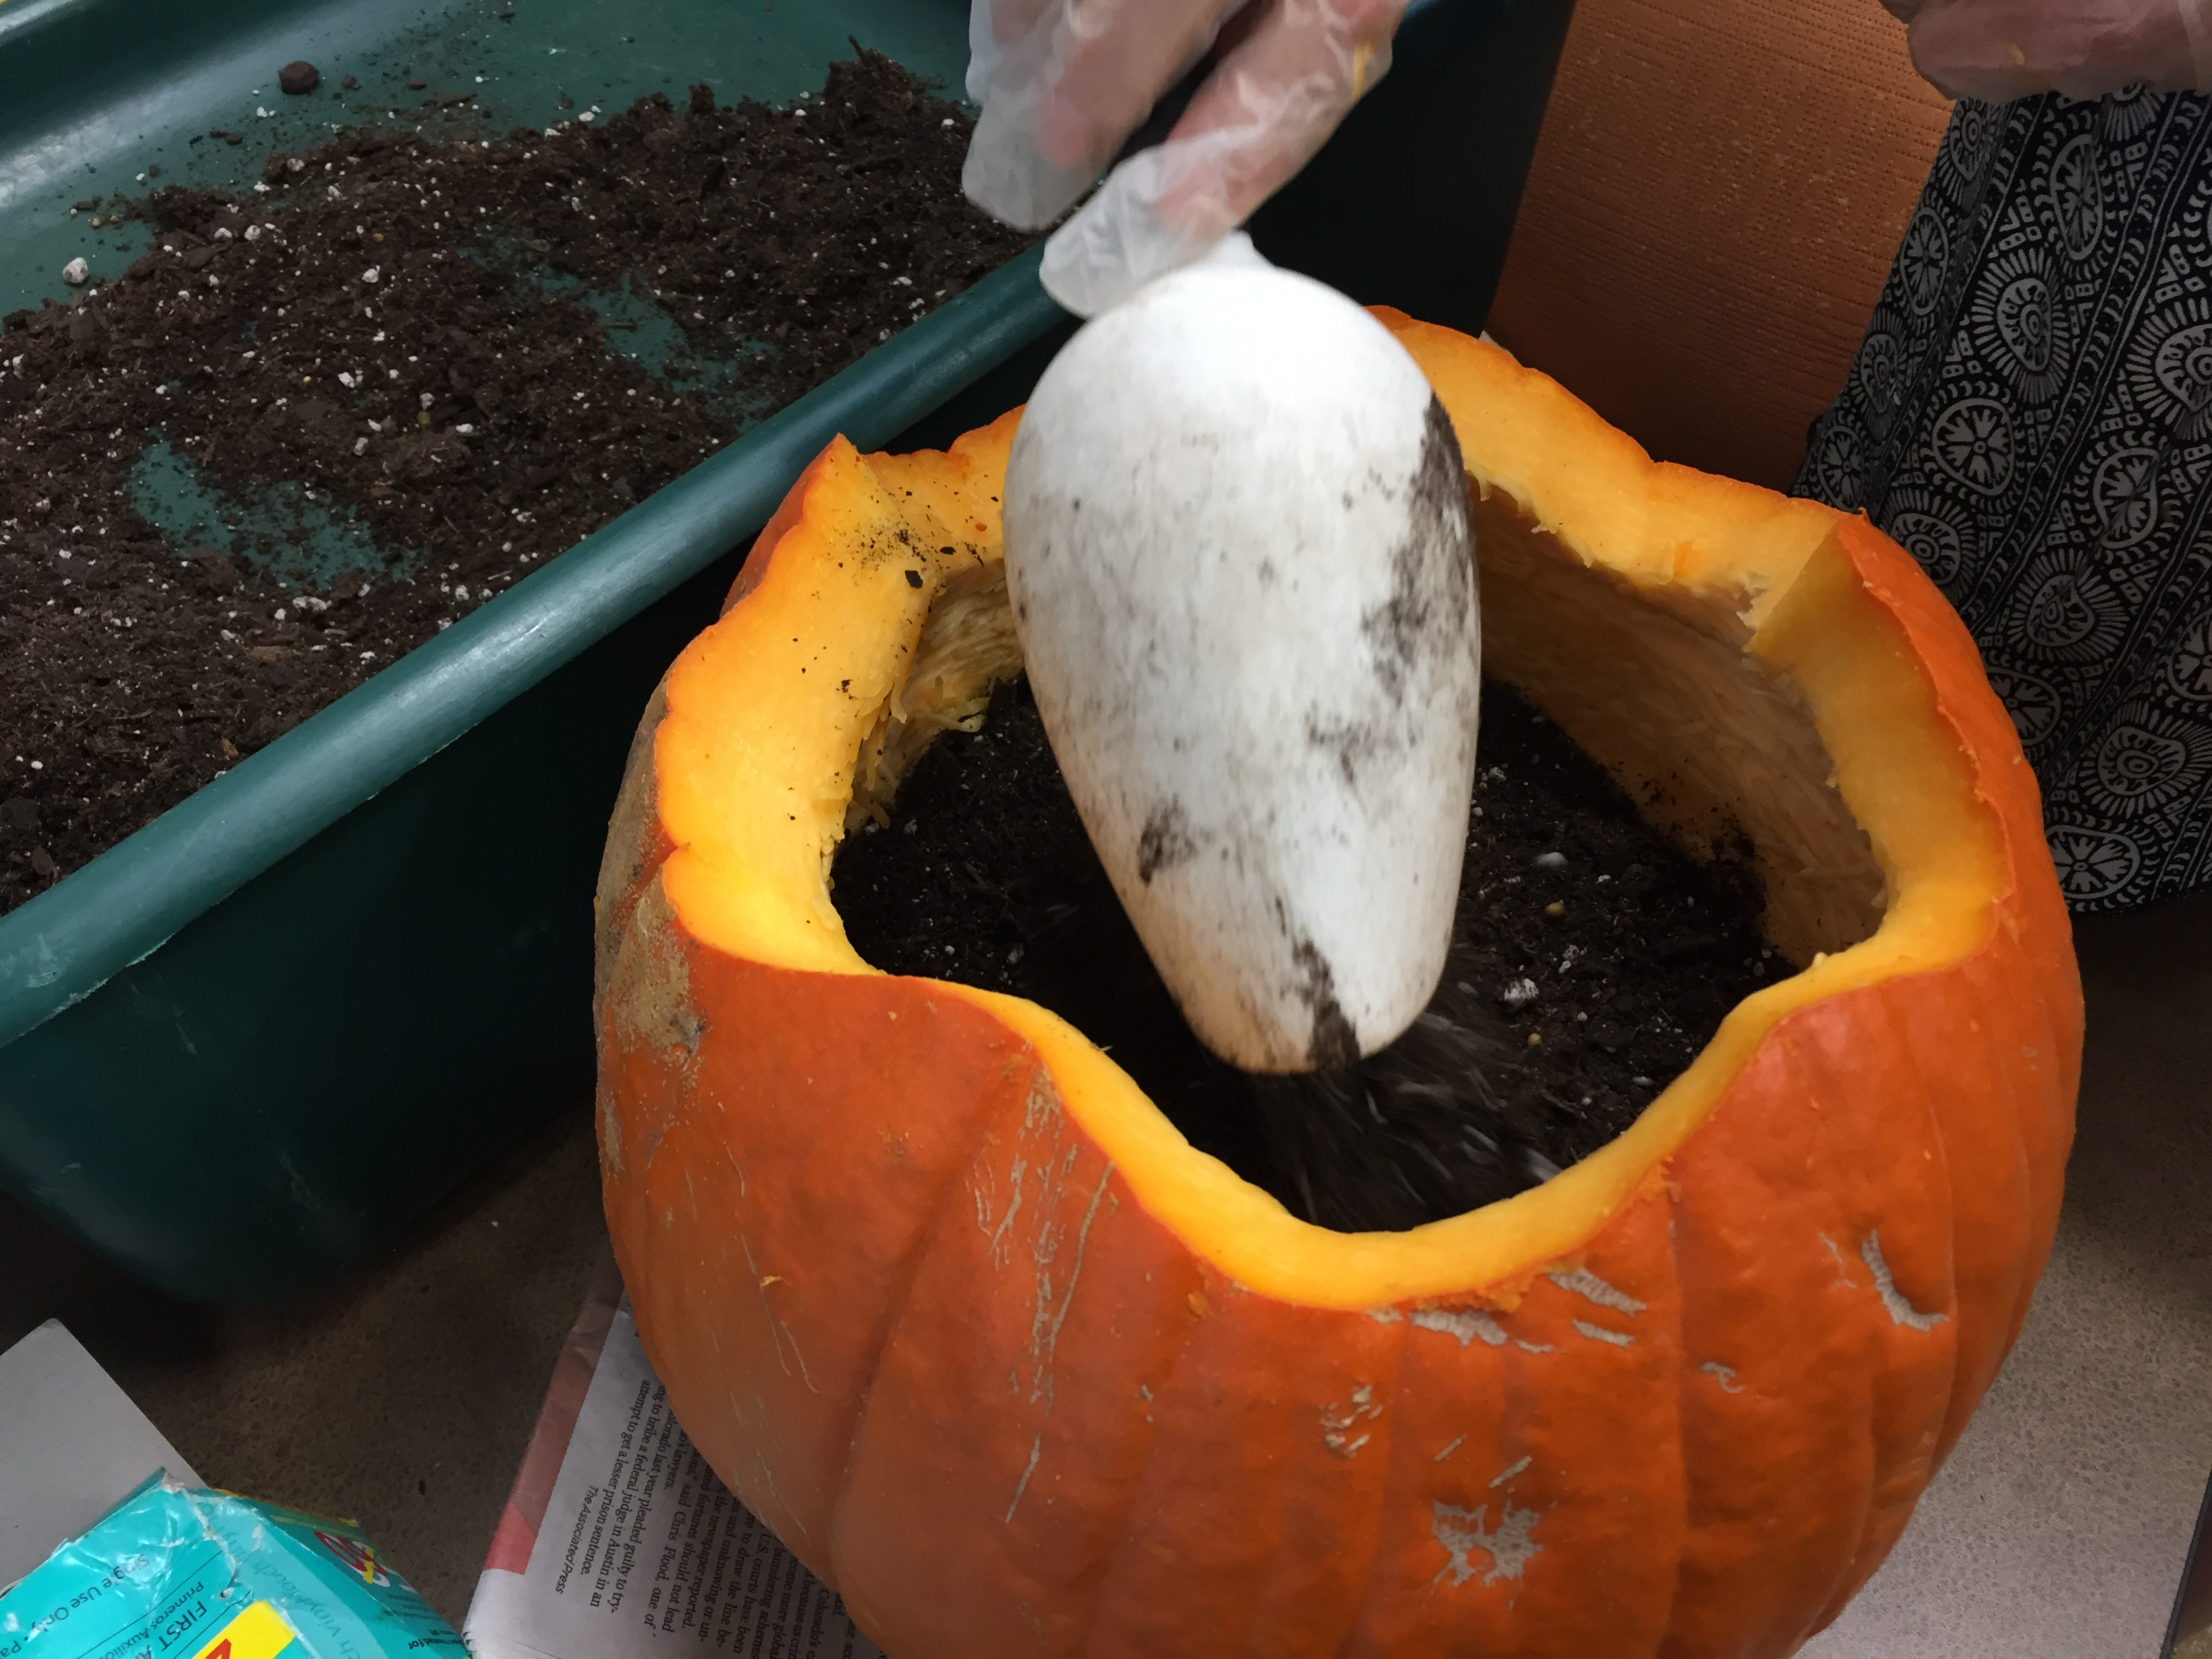 scoop-soil-pumpkin_eatbreathegarden